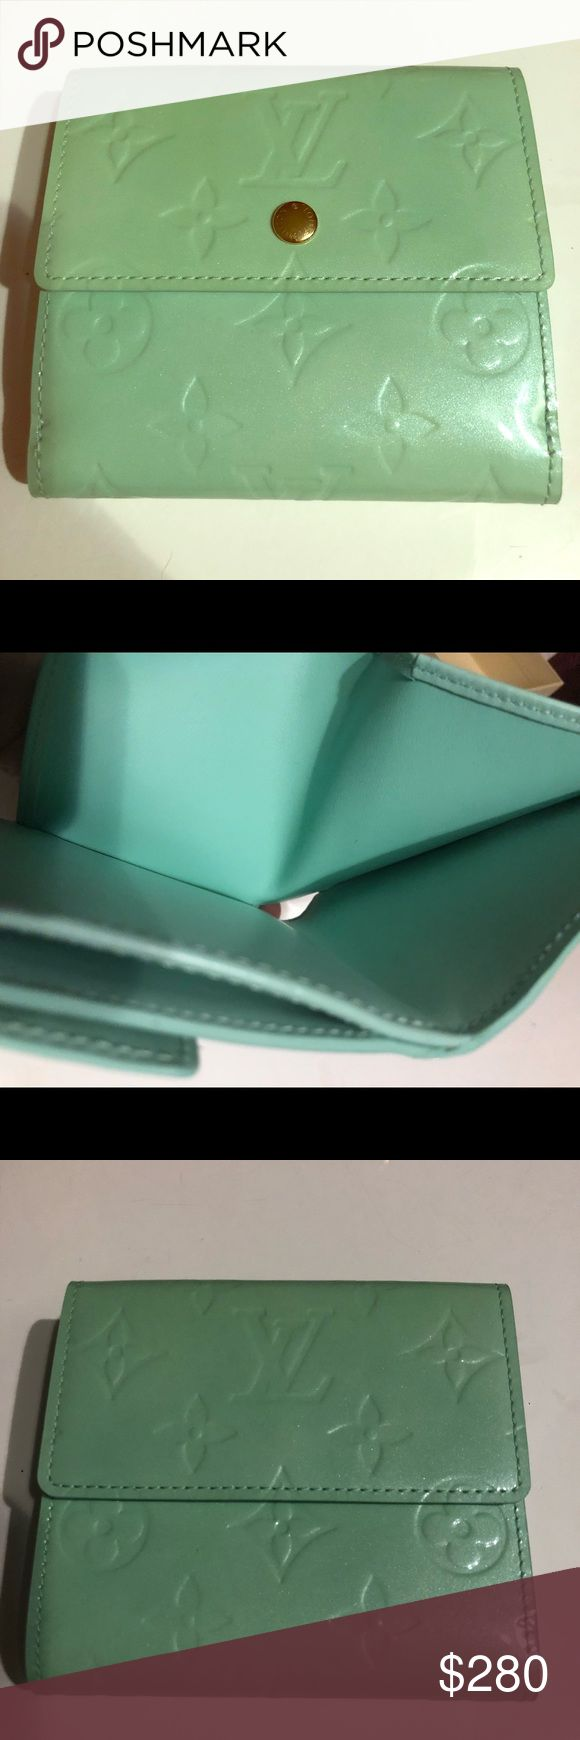 Louis Vuitton Wallet 100% Authentic Louis Vuitton Wallet. It's light turquoise color, used but in a perfect condition. Almost like new. Comes in the original packaging. It's a great  chance to have Louis Vuitton Wallet for a great price. If you have questions or need more pictures, don't hesitate to ask! 😉 Louis Vuitton Bags Wallets